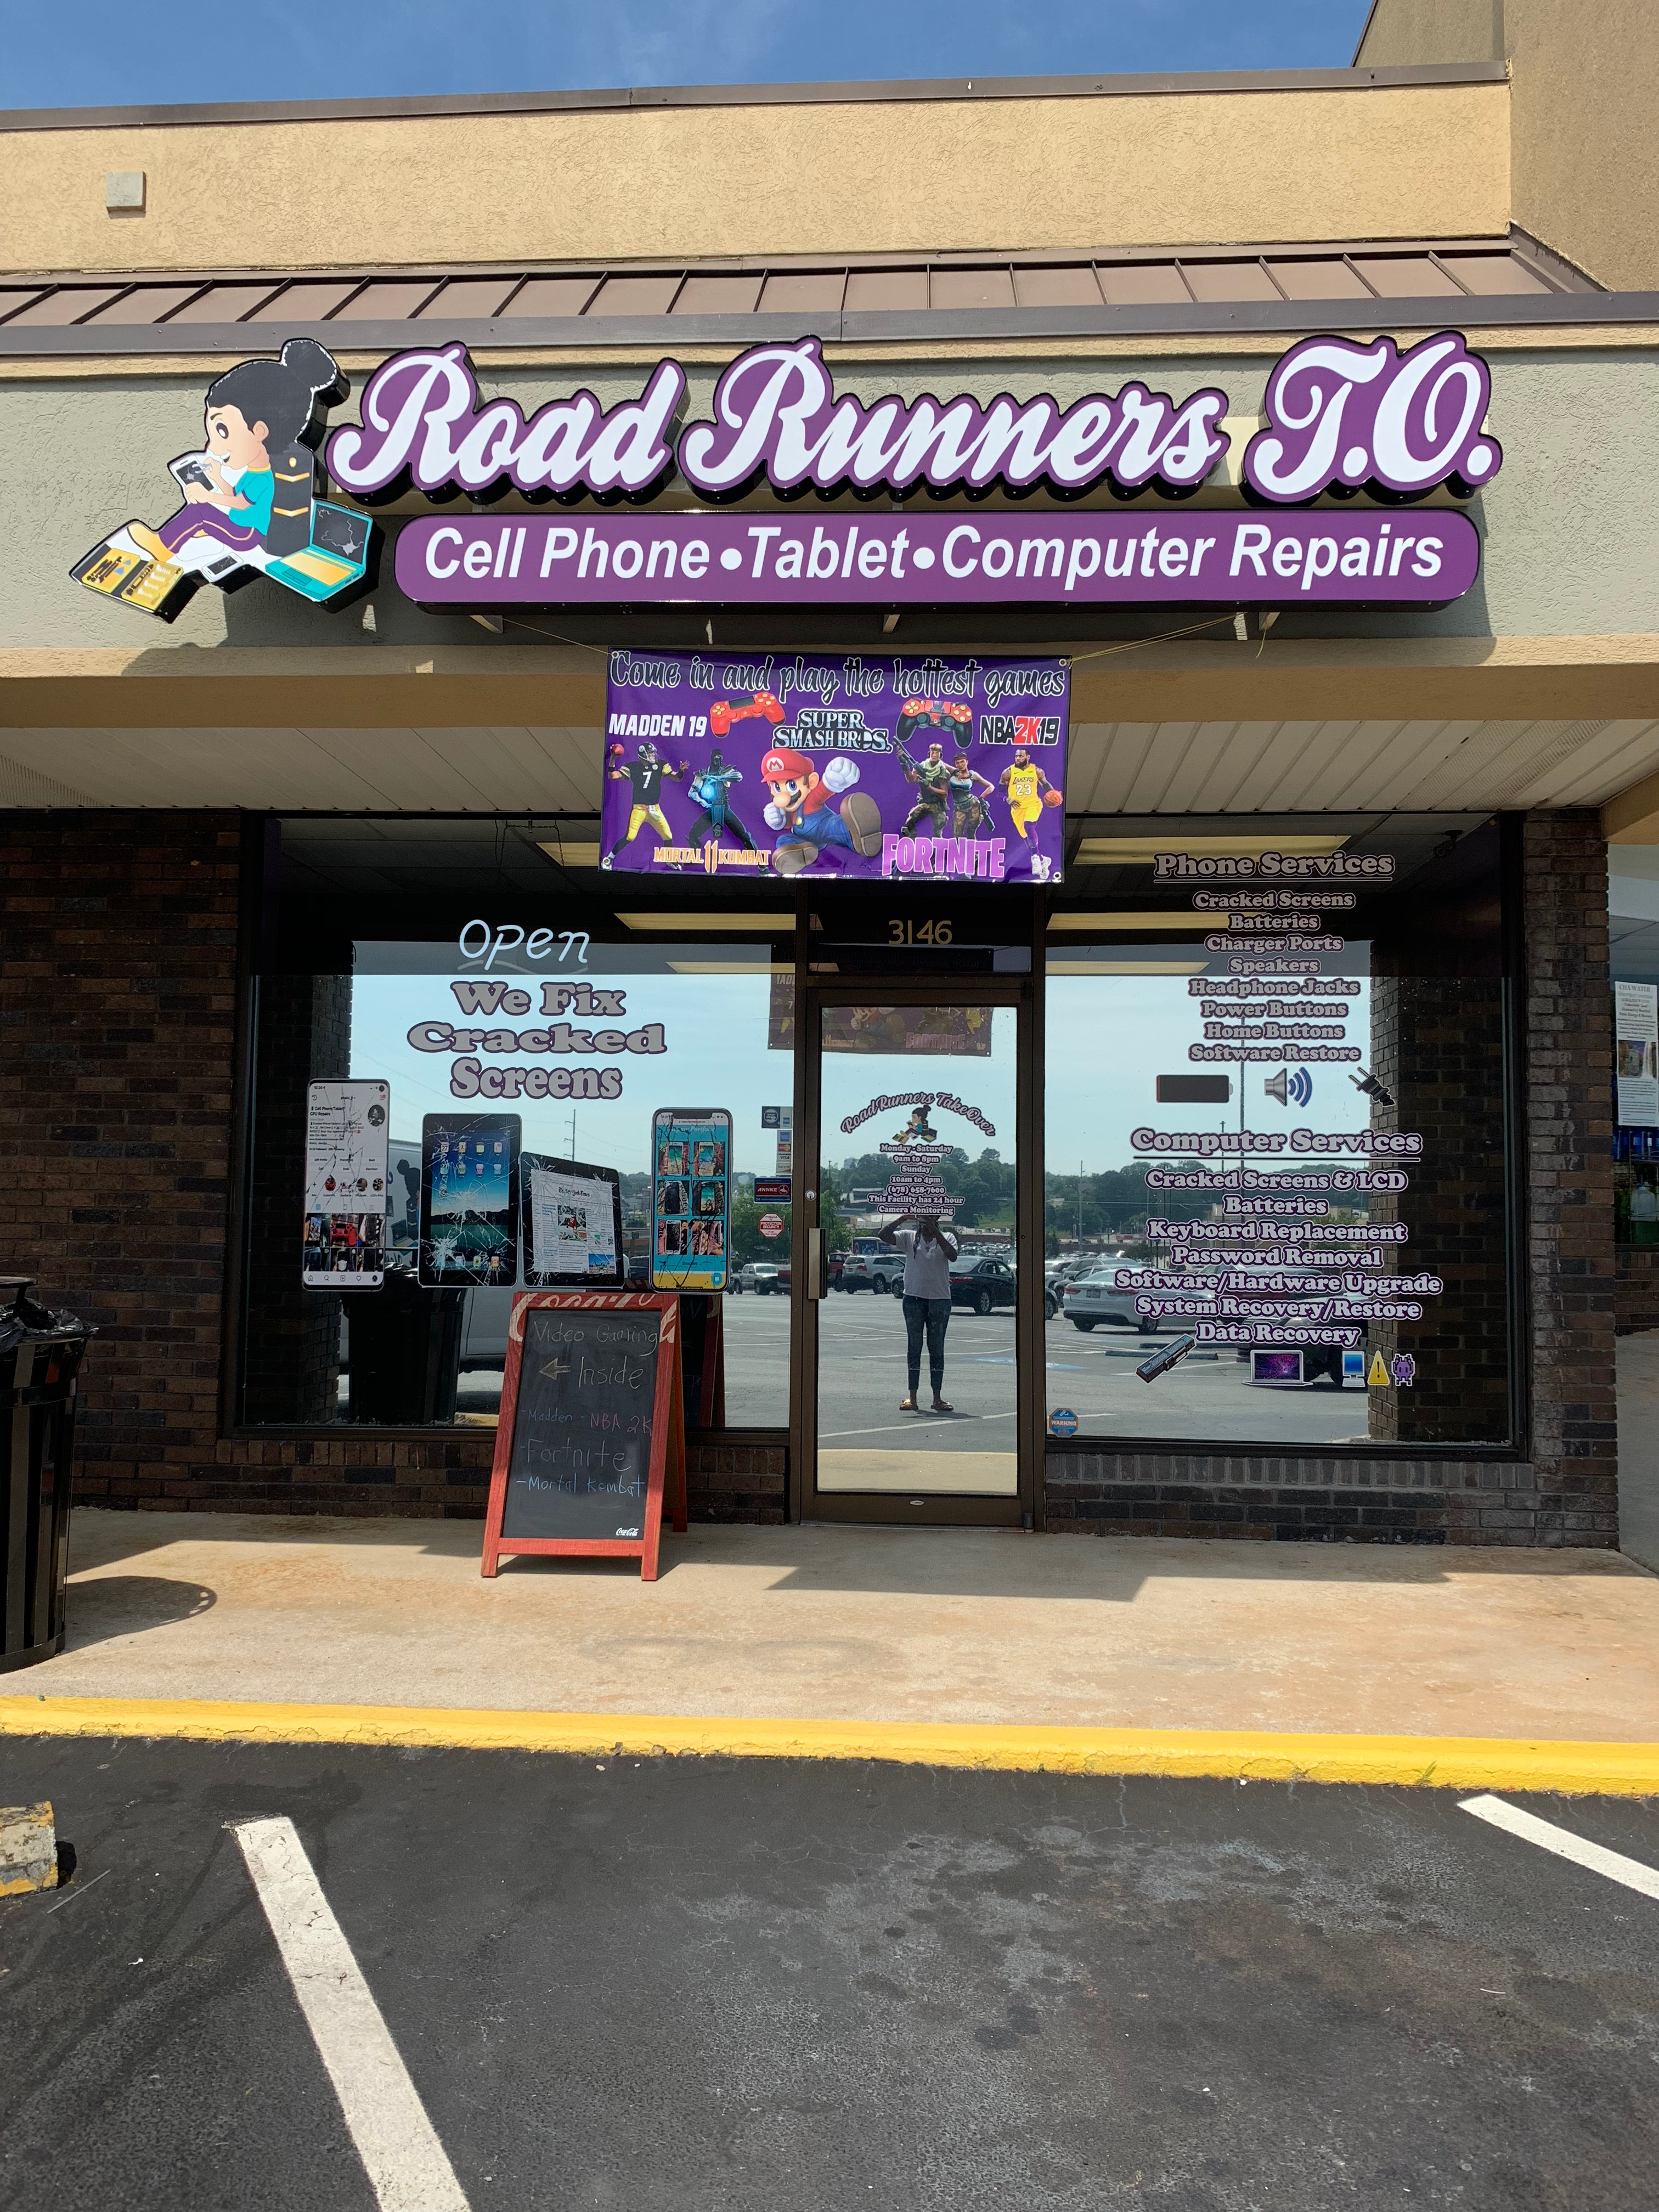 RoadRunners TakeOver Cell Phone & Computer Repairs